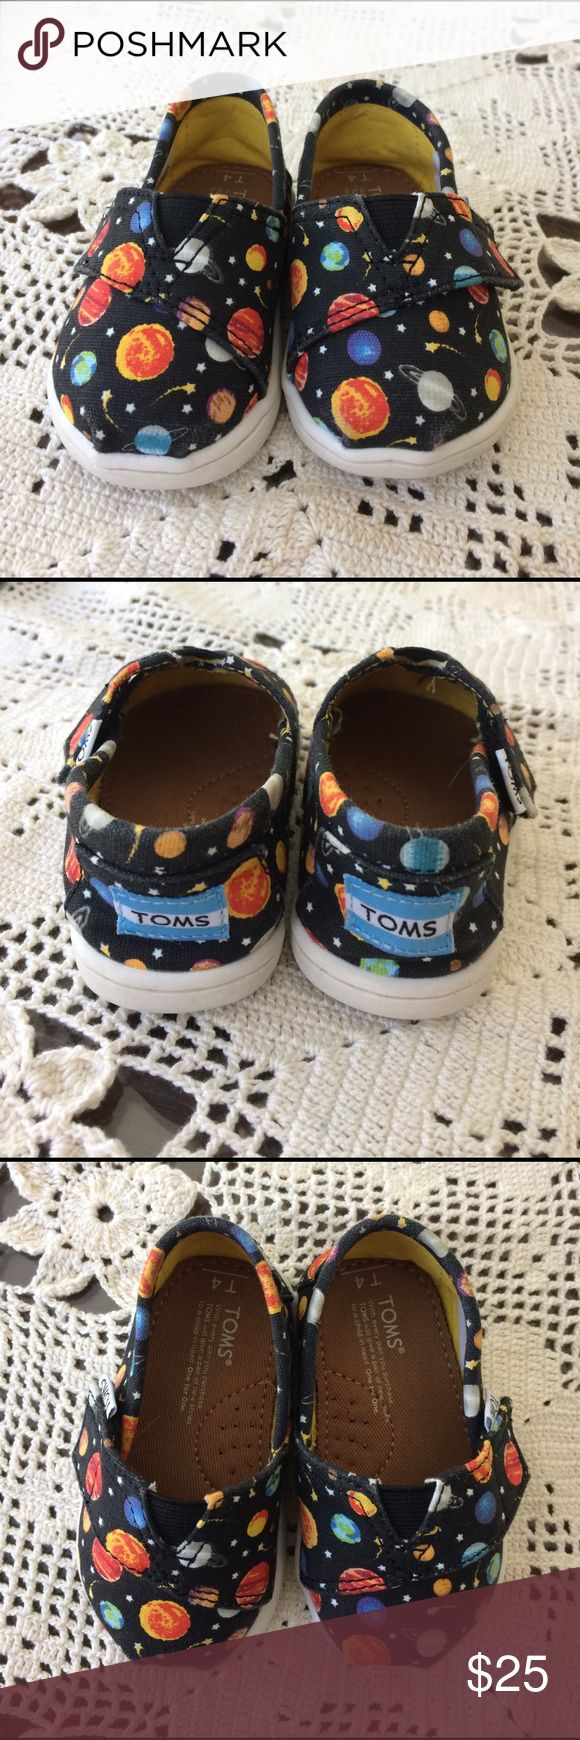 Toddler Boys Toms Planets Shoes Toddler Boys Toms canvas shoes in size 4. Planets and stars on a black background. They have Velcro on the side for easy access. These look like new. TOMS Shoes Sneakers